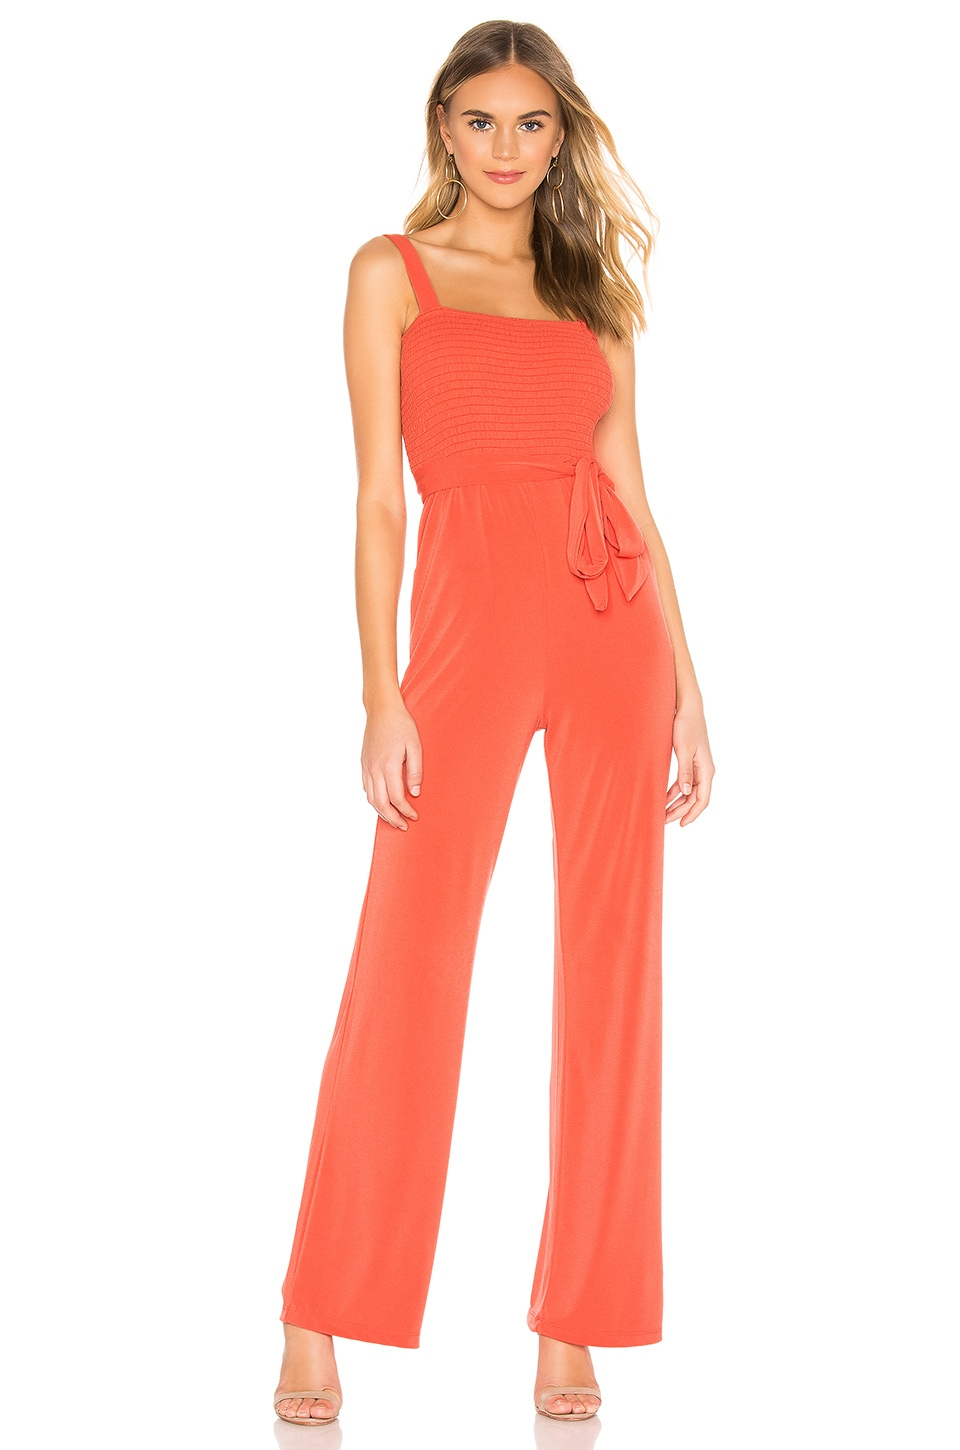 Privacy Please Abella Jumpsuit in Coral